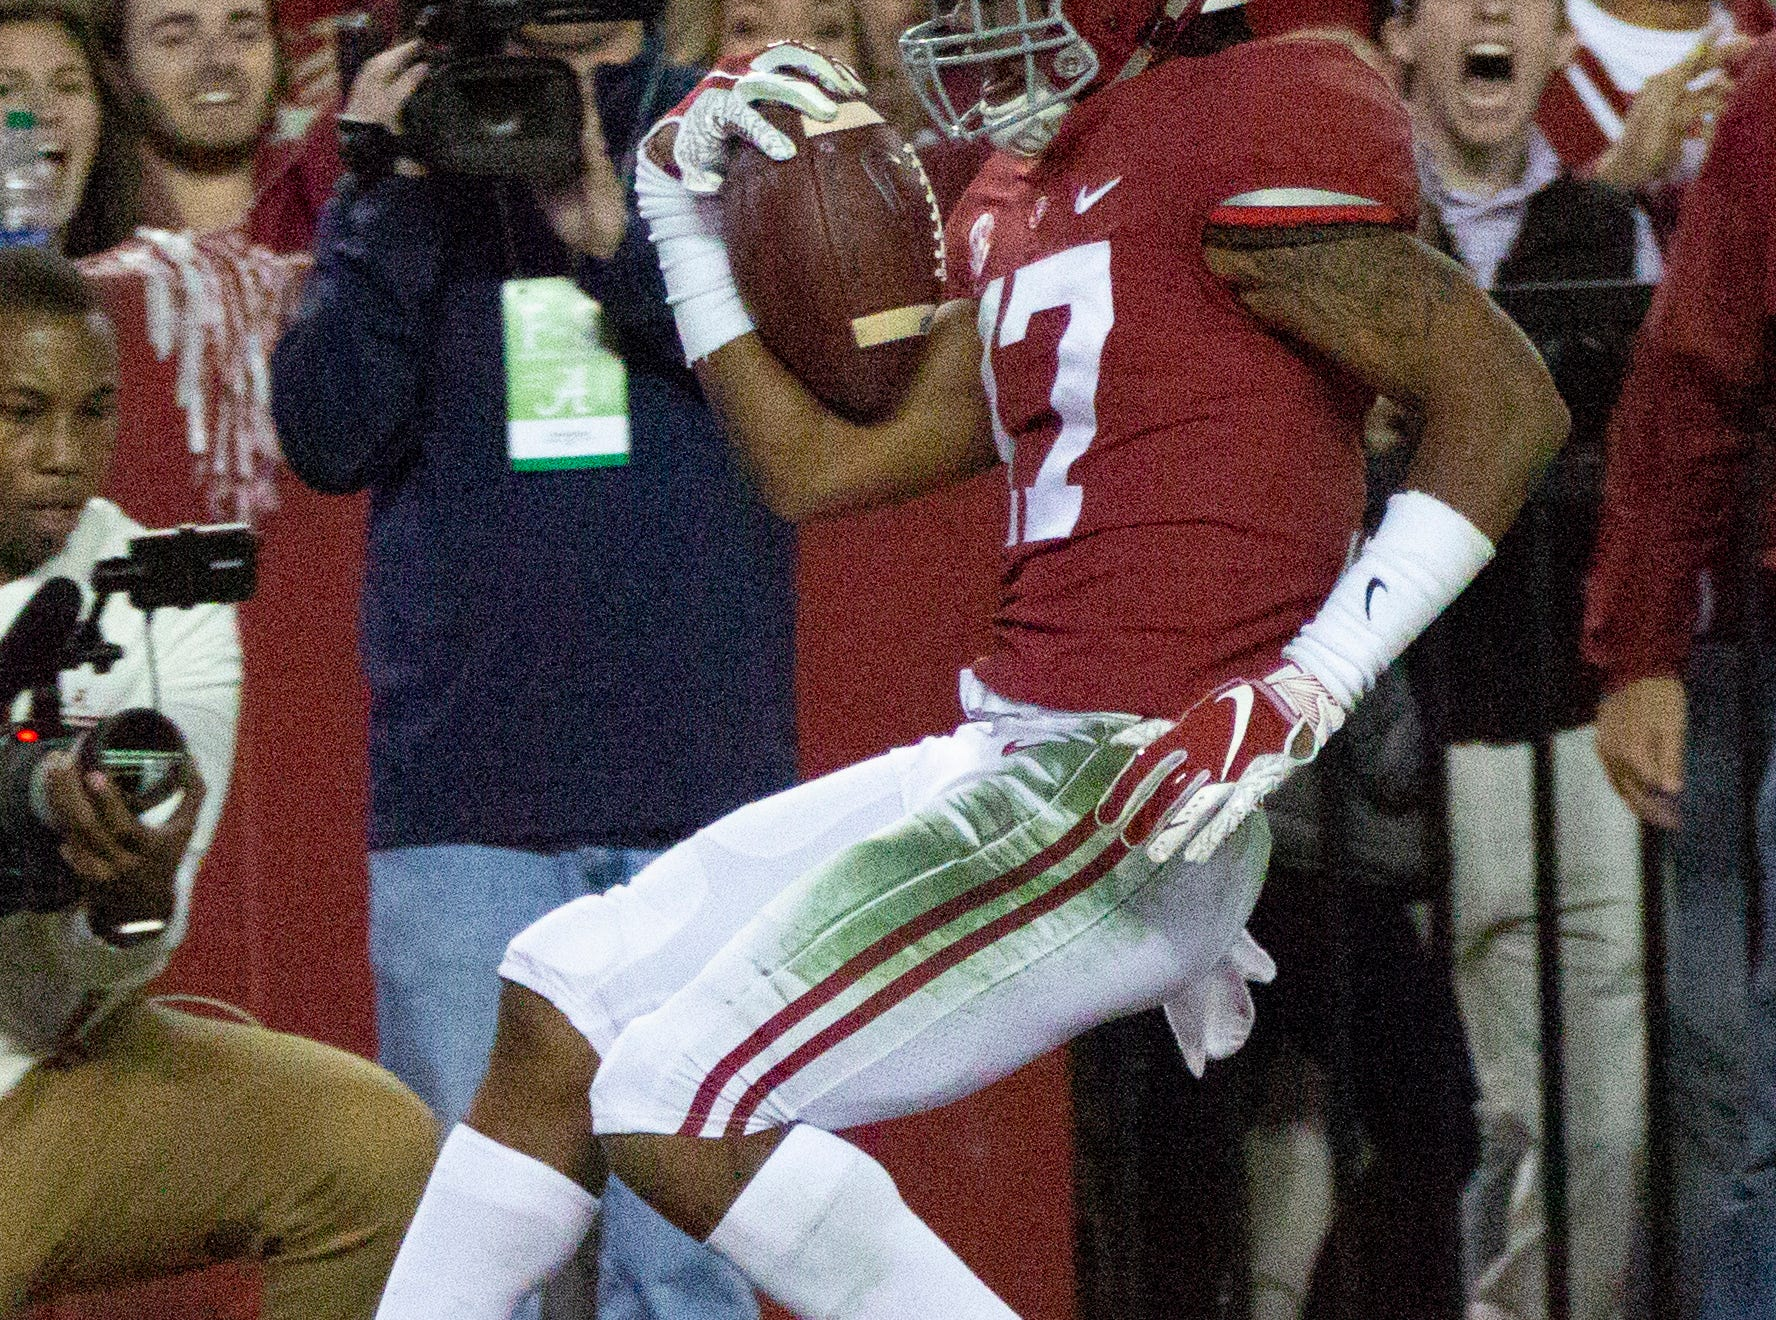 Alabama's Jaylen Waddle poses after scoring a touchdown for the Tide in the fourth quarter.